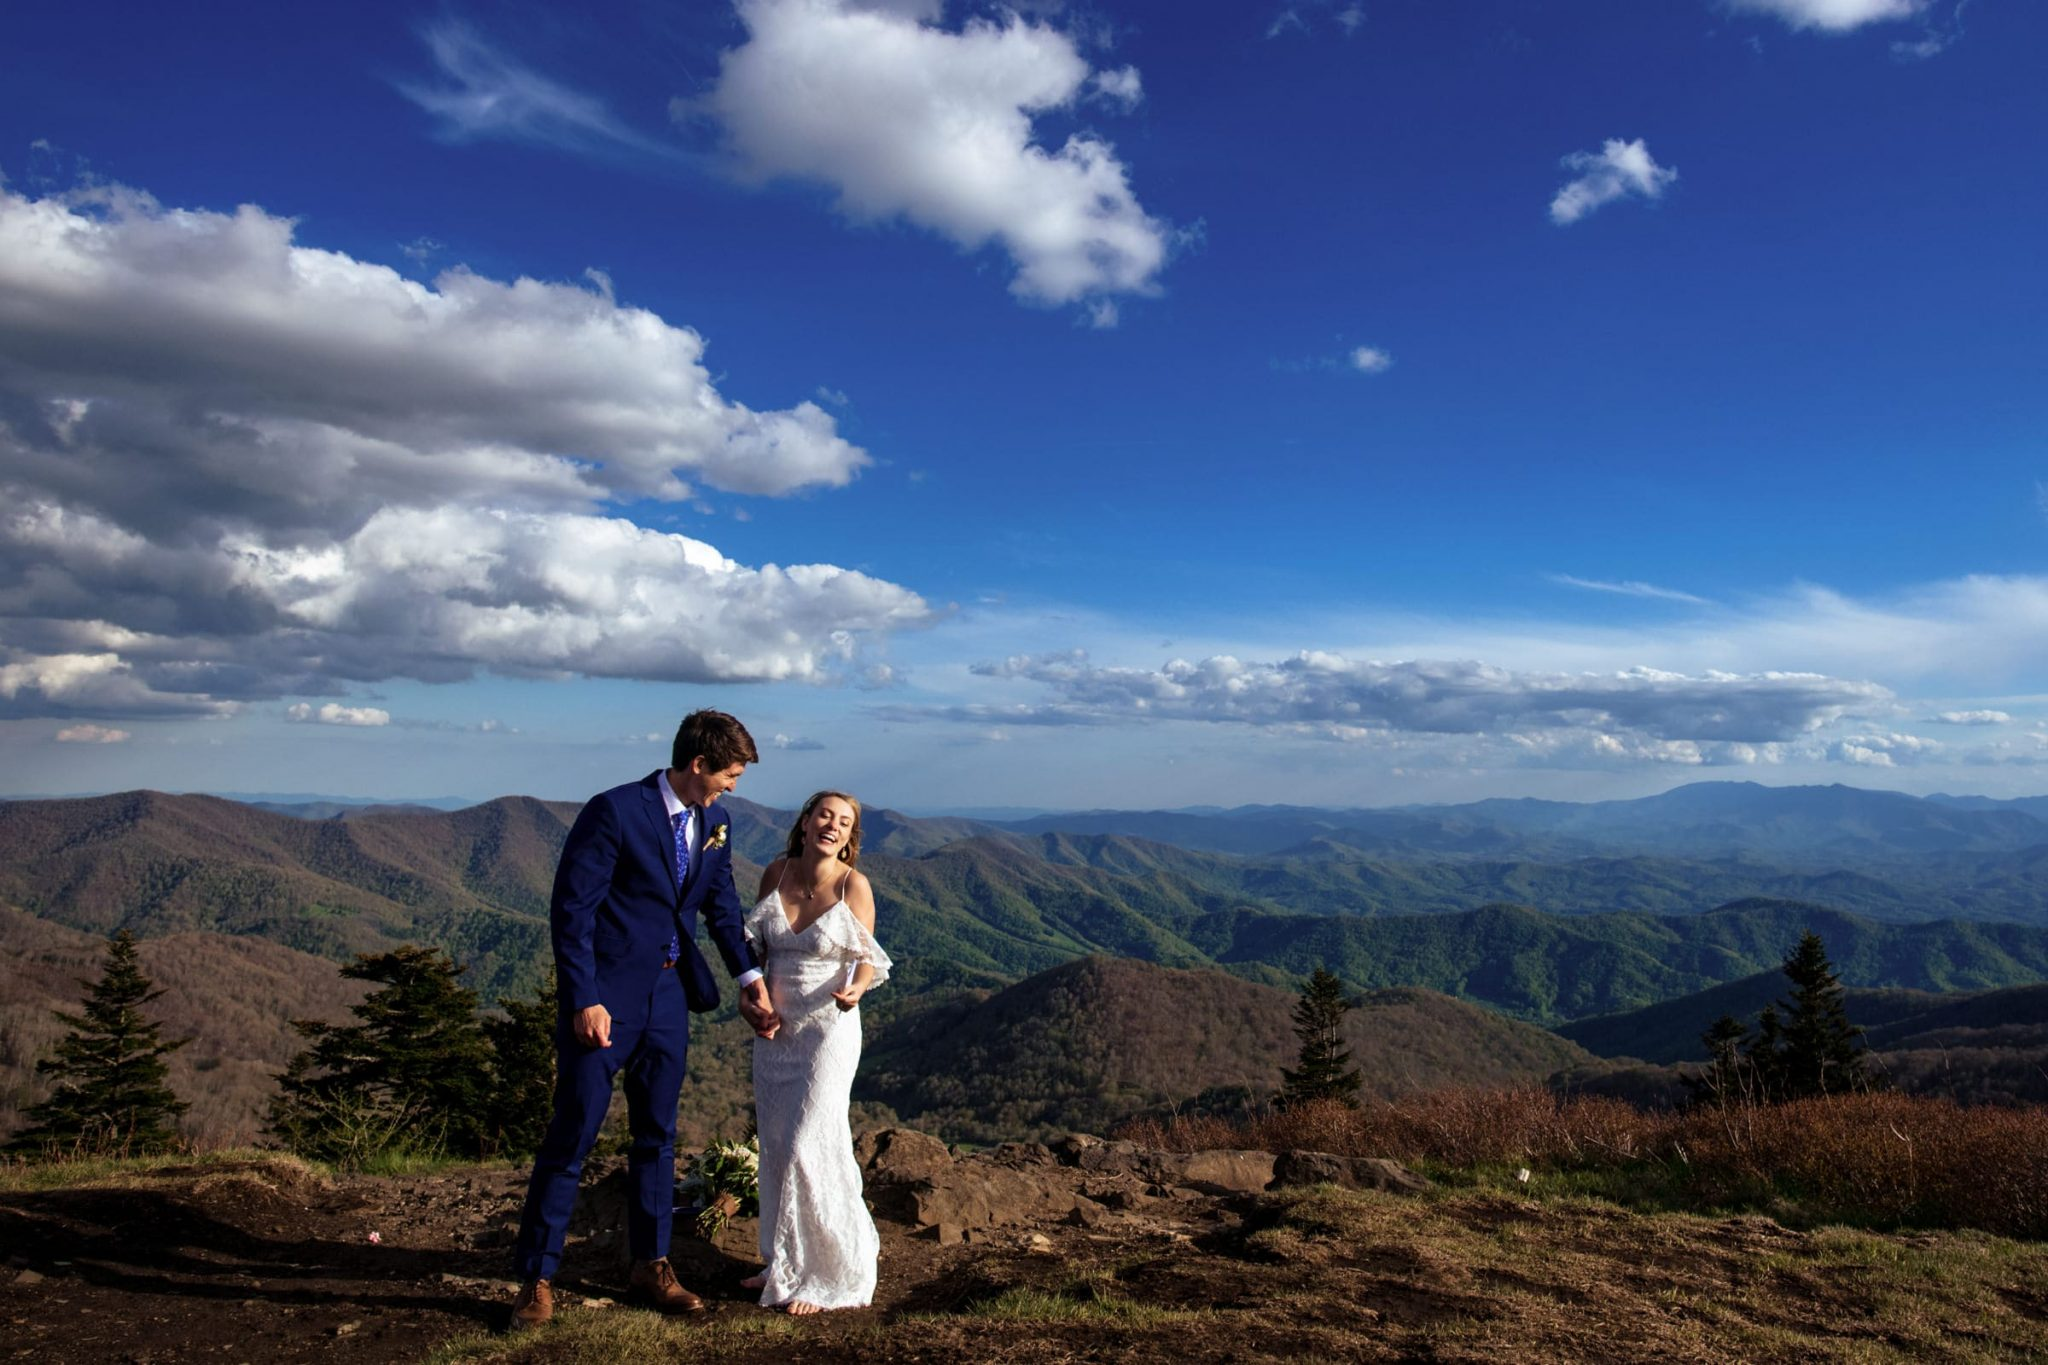 Couple saying their vows during their elopement at carvers gap in the roan mountains